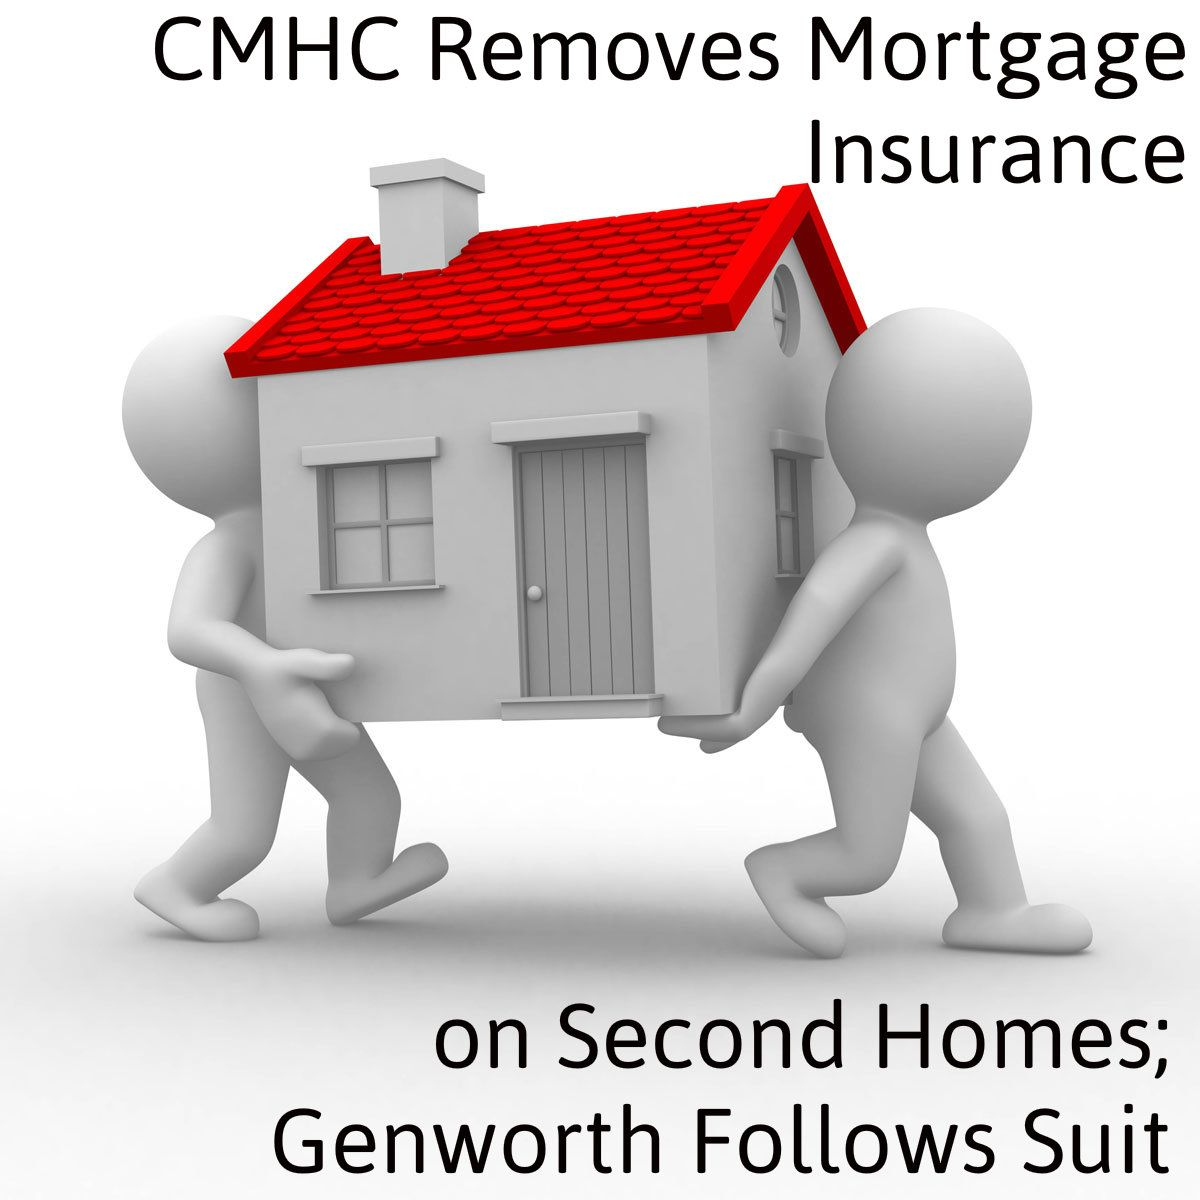 Cmhc Removes Mortgage Insurance On Second Homes Genworth Follows